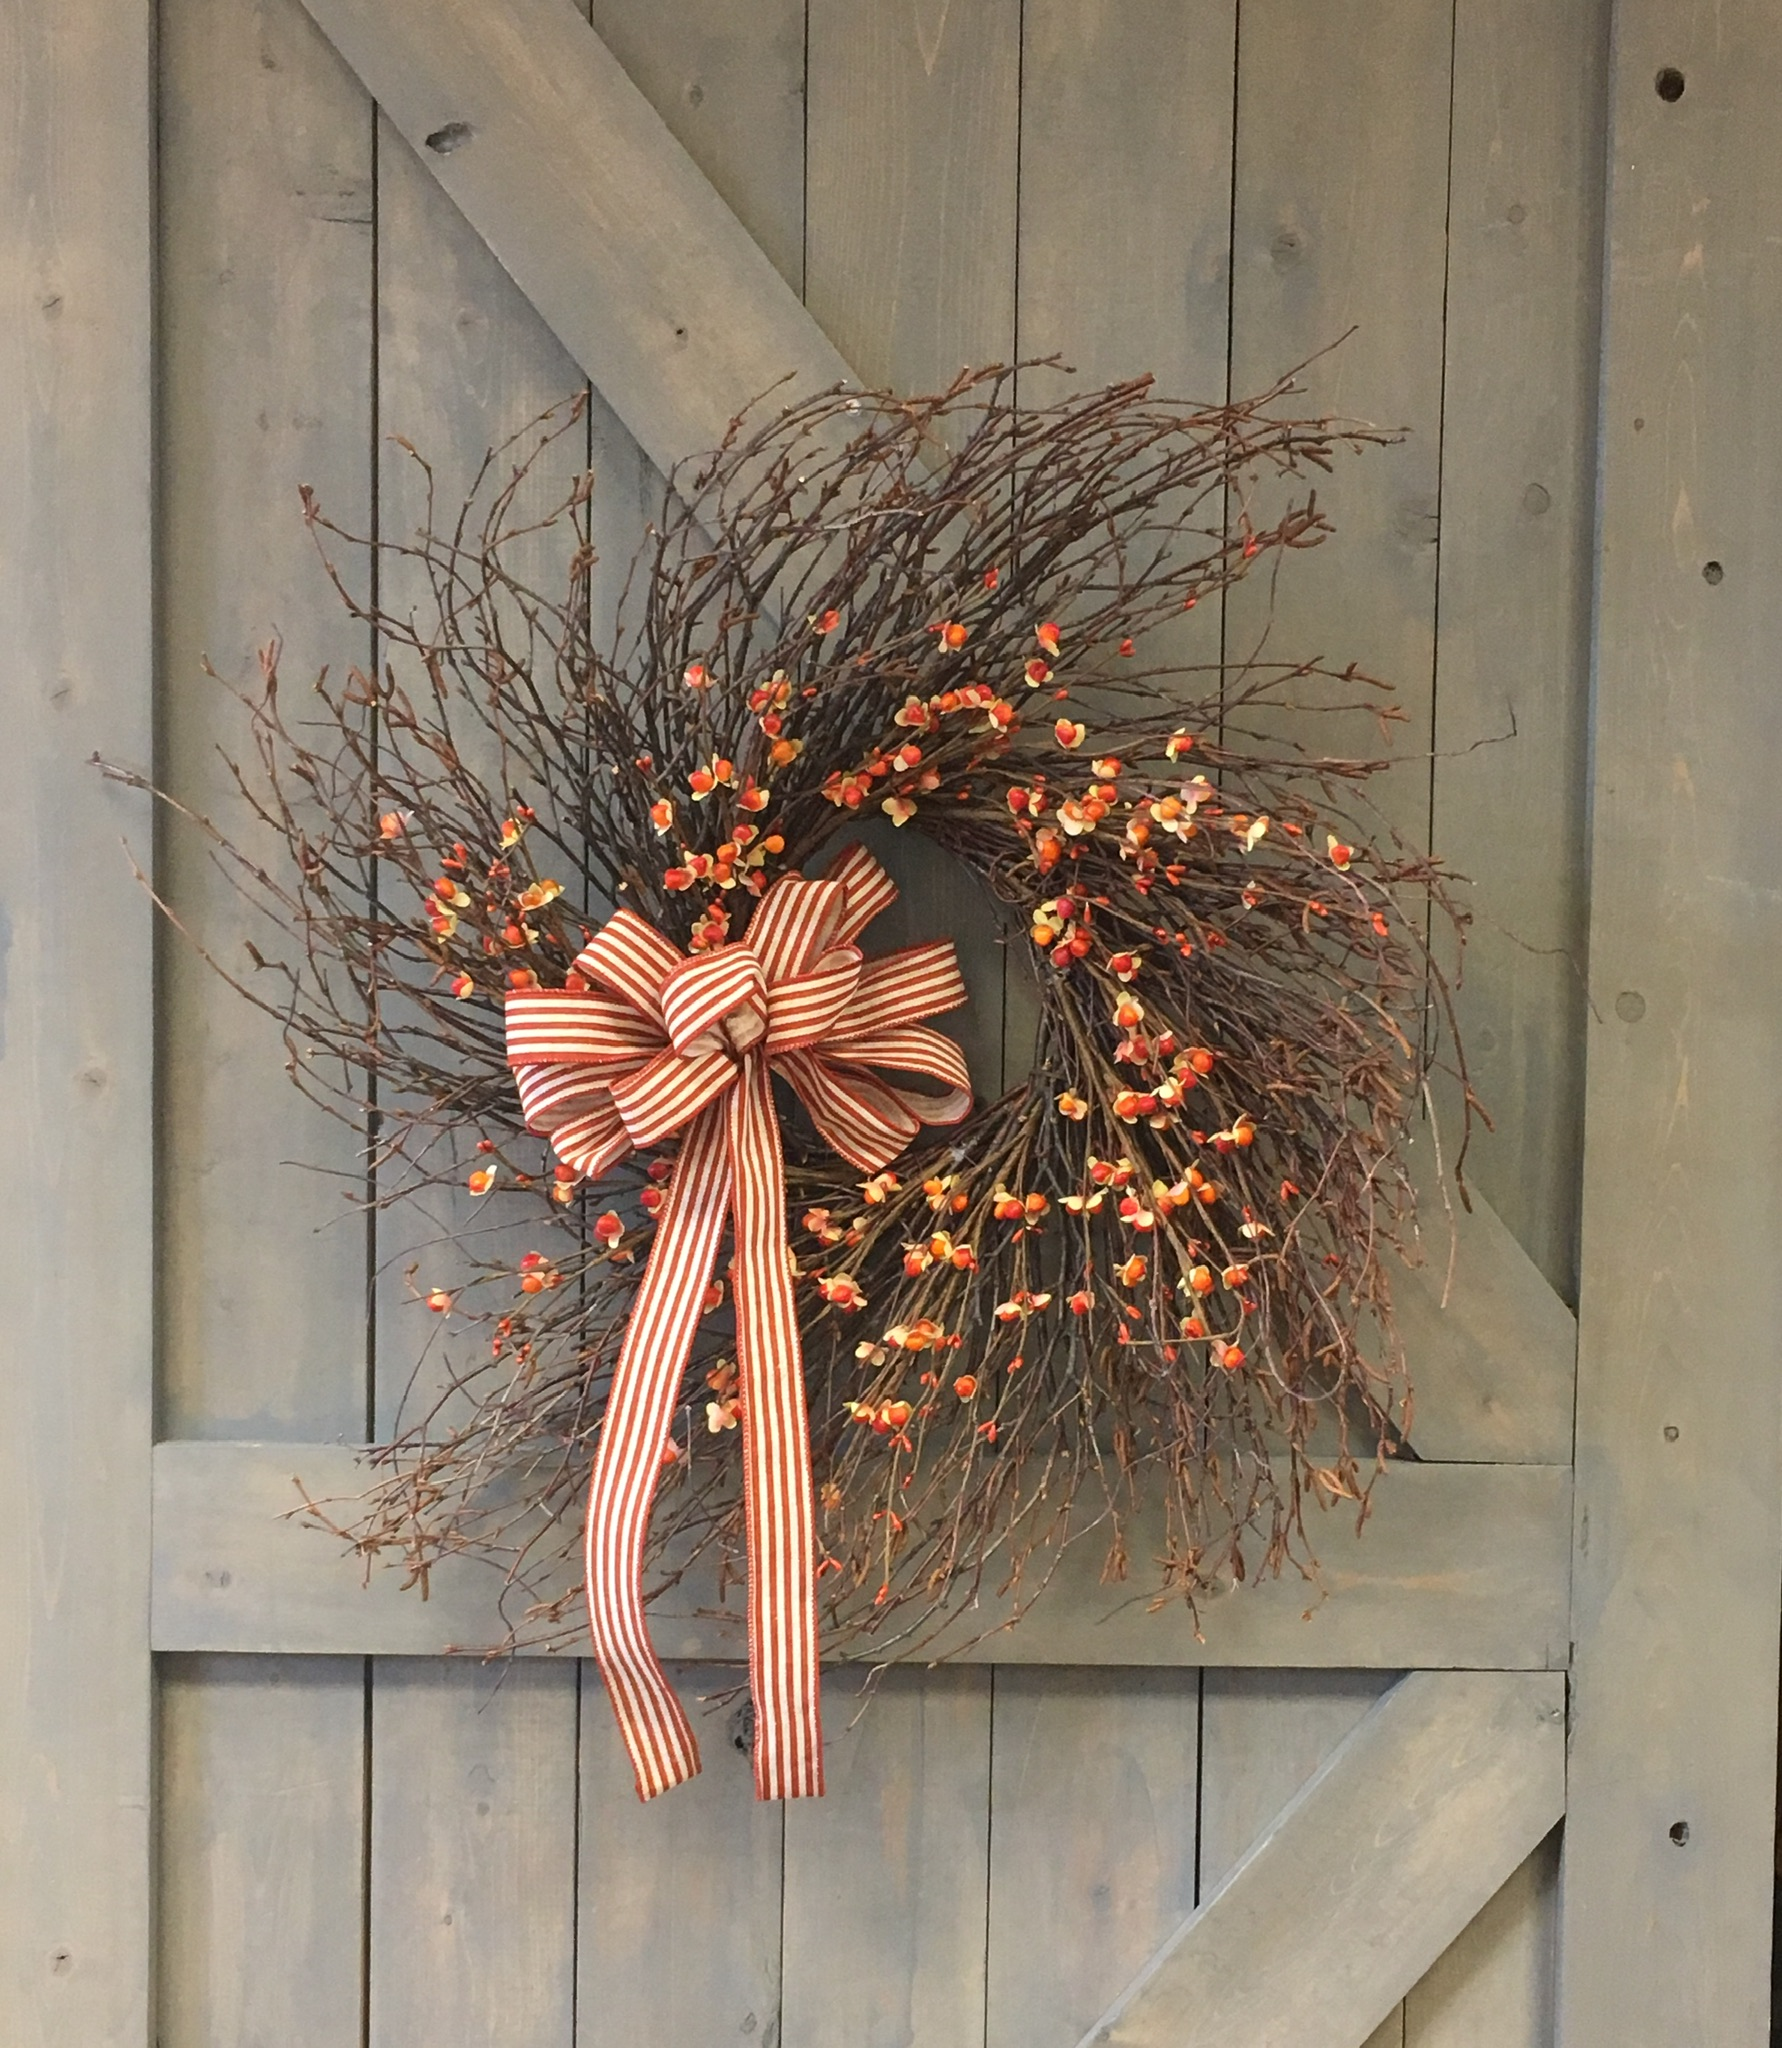 Fall Decor Open House @ Accents Home Furnishings & Decor